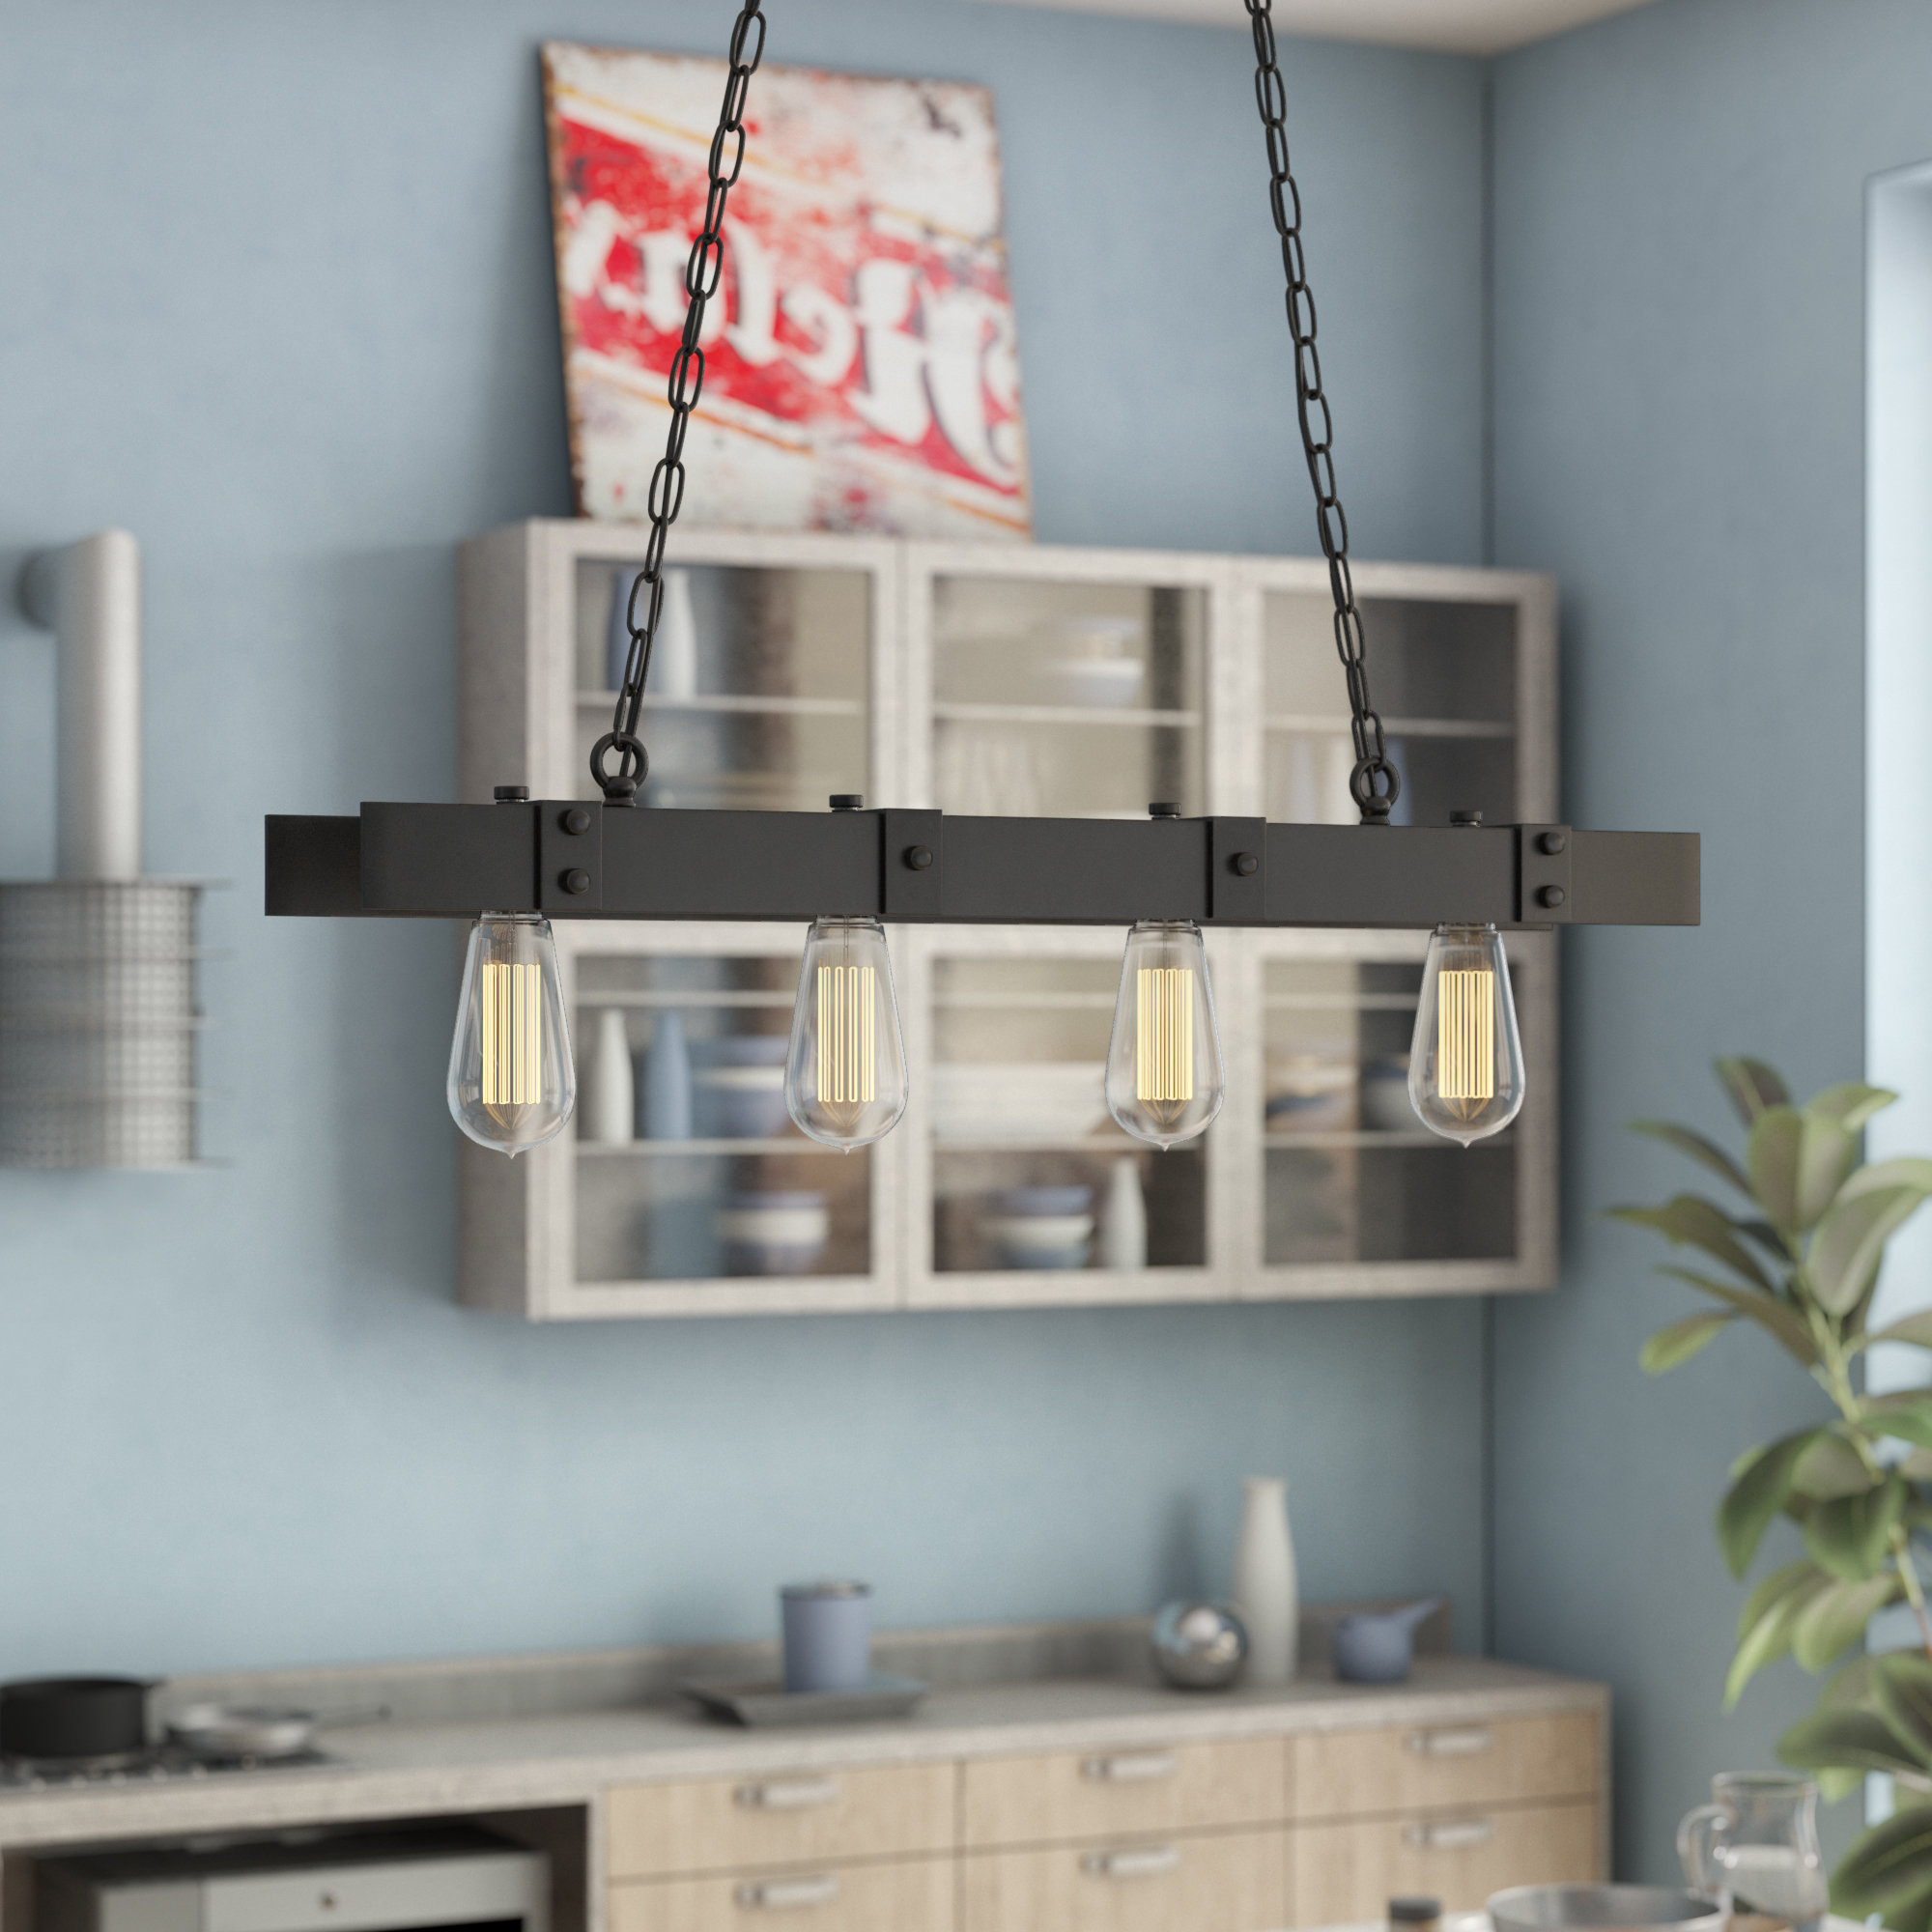 Schutt 4 Light Kitchen Island Pendants Within Widely Used Kitchen Island Williston Forge Pendant Lighting You'll Love (View 15 of 20)